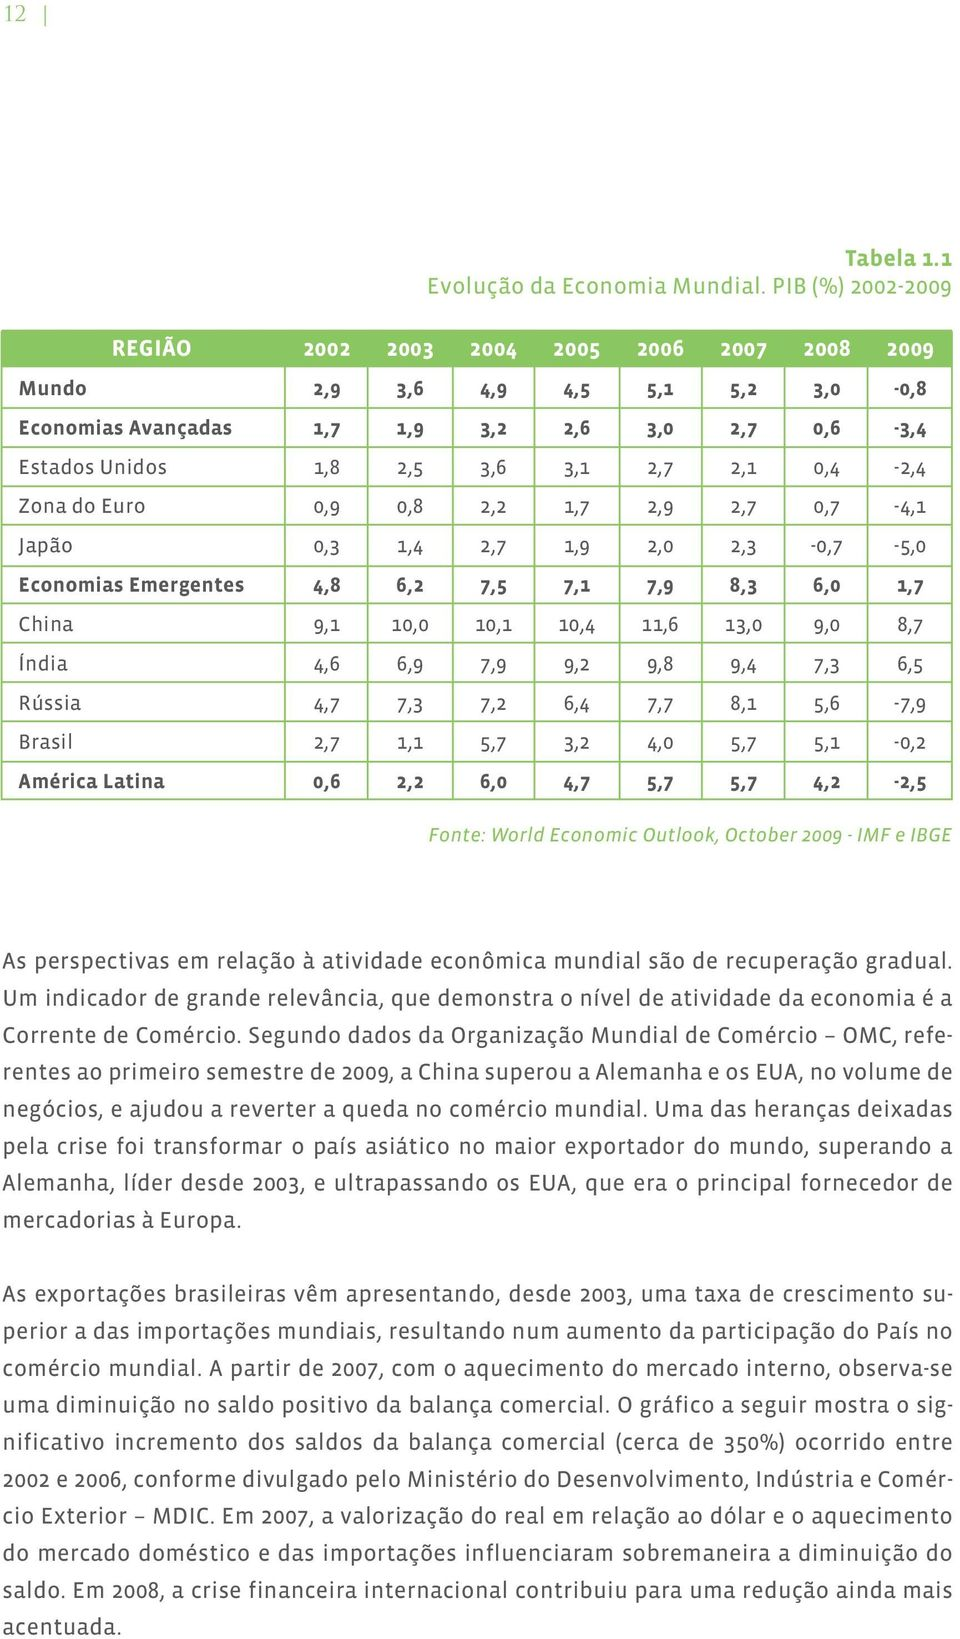 0,4-2,4 Zona do Euro 0,9 0,8 2,2 1,7 2,9 2,7 0,7-4,1 Japão 0,3 1,4 2,7 1,9 2,0 2,3-0,7-5,0 Economias Emergentes 4,8 6,2 7,5 7,1 7,9 8,3 6,0 1,7 China 9,1 10,0 10,1 10,4 11,6 13,0 9,0 8,7 Índia 4,6